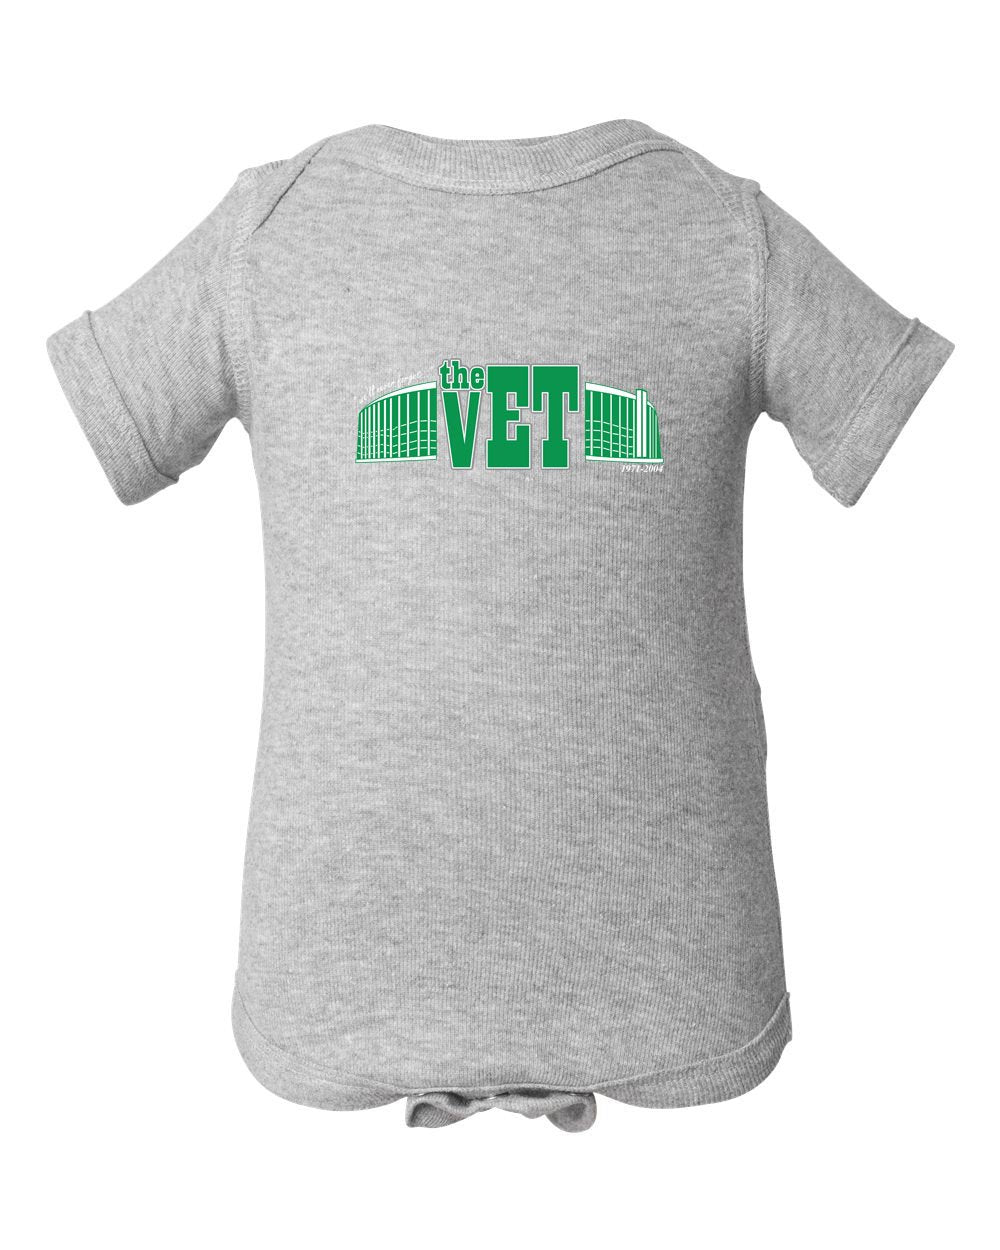 The Vet Football INFANT Onesie